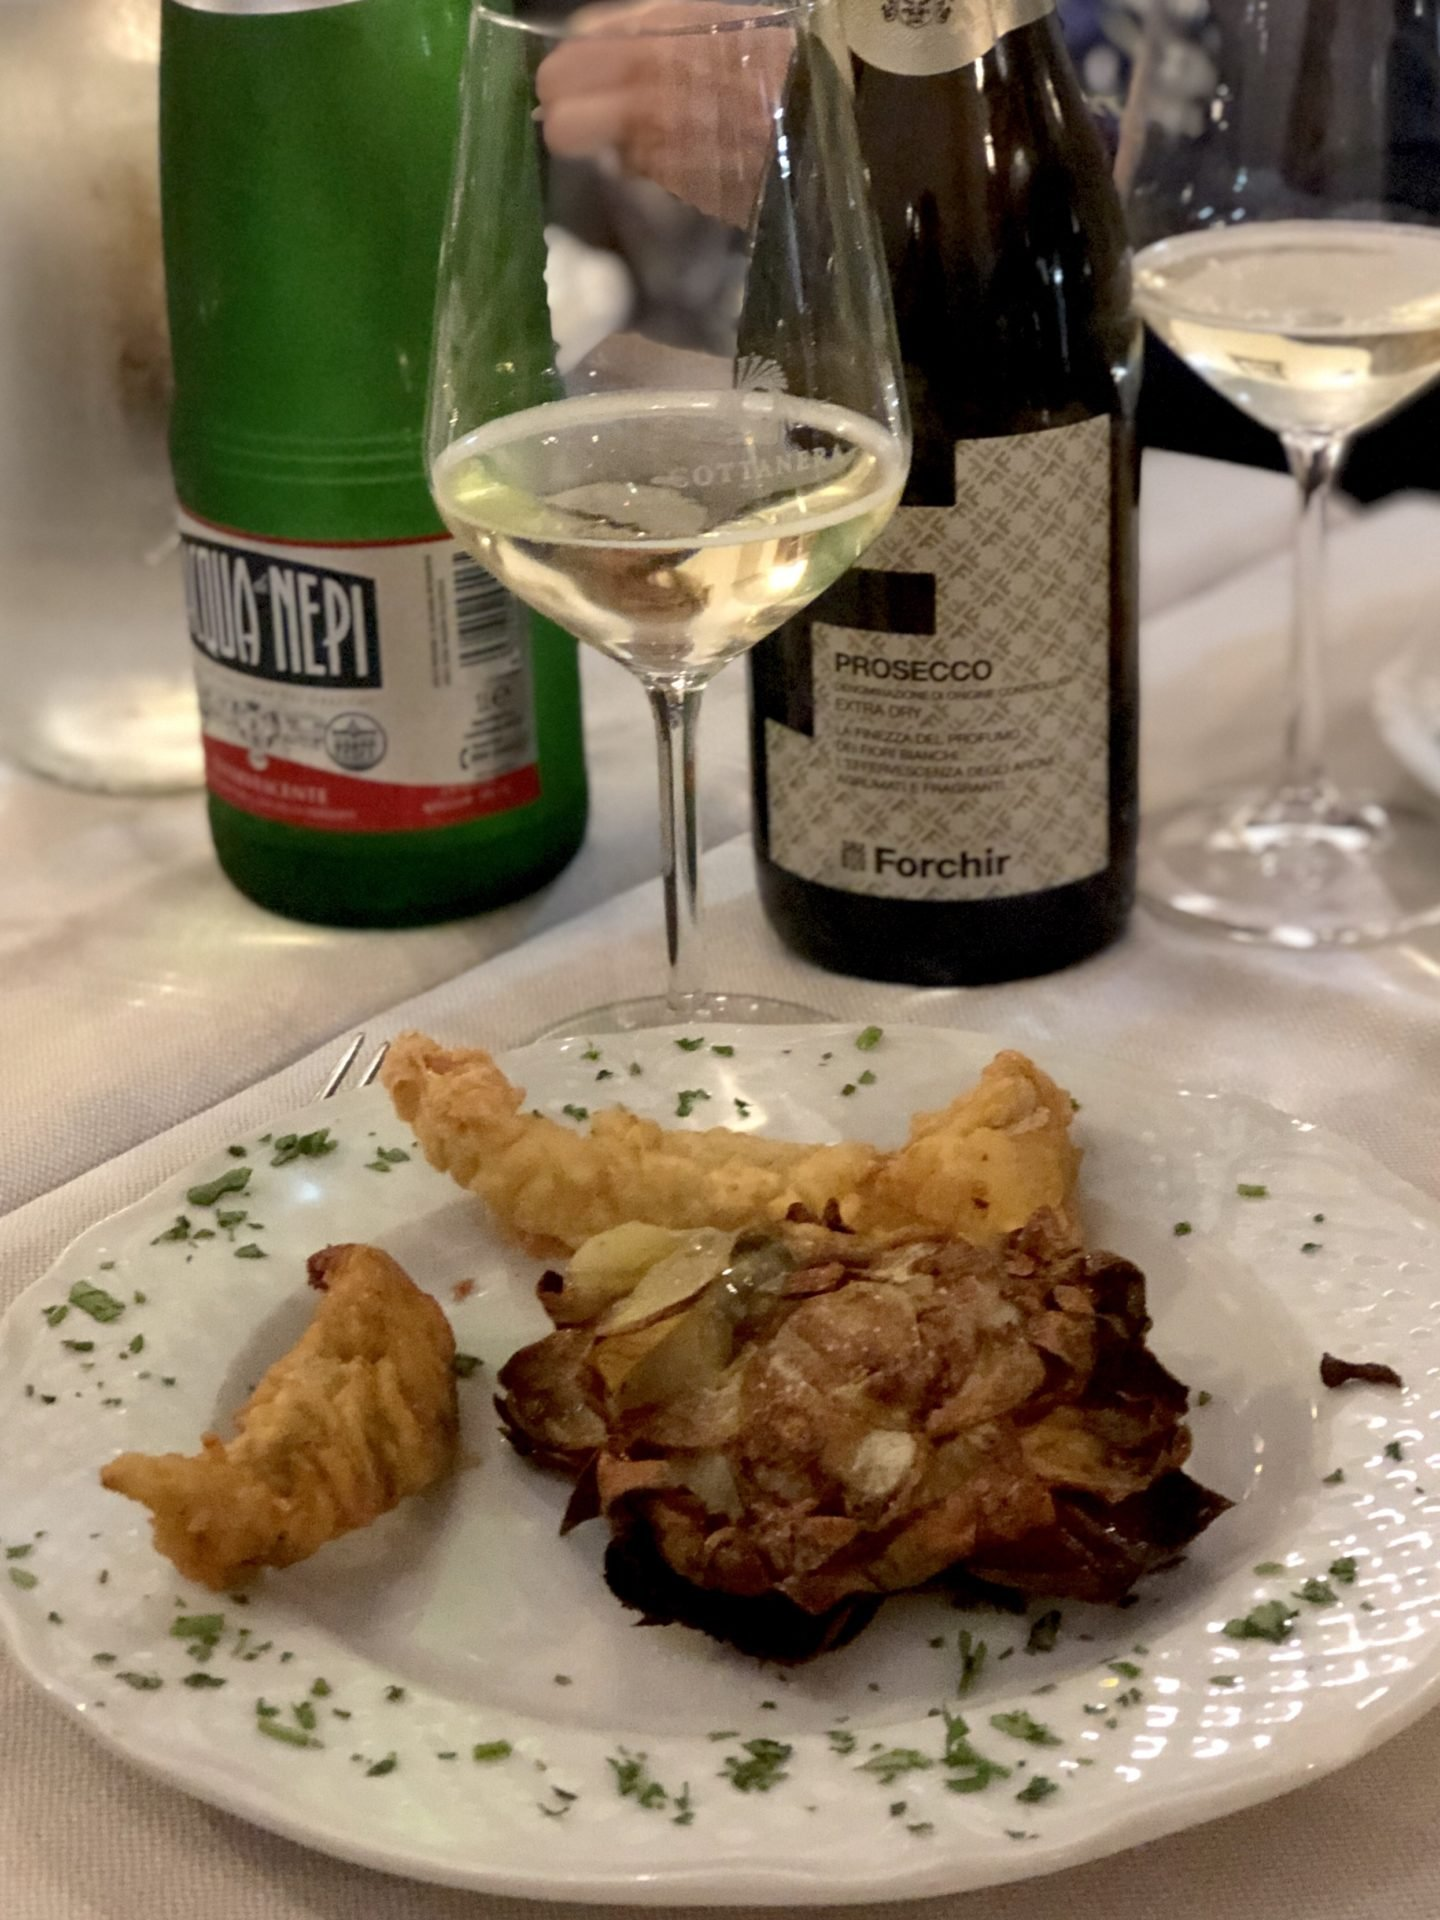 Jewish artichoke is eaten around the area as snack or a main meal. in Rome